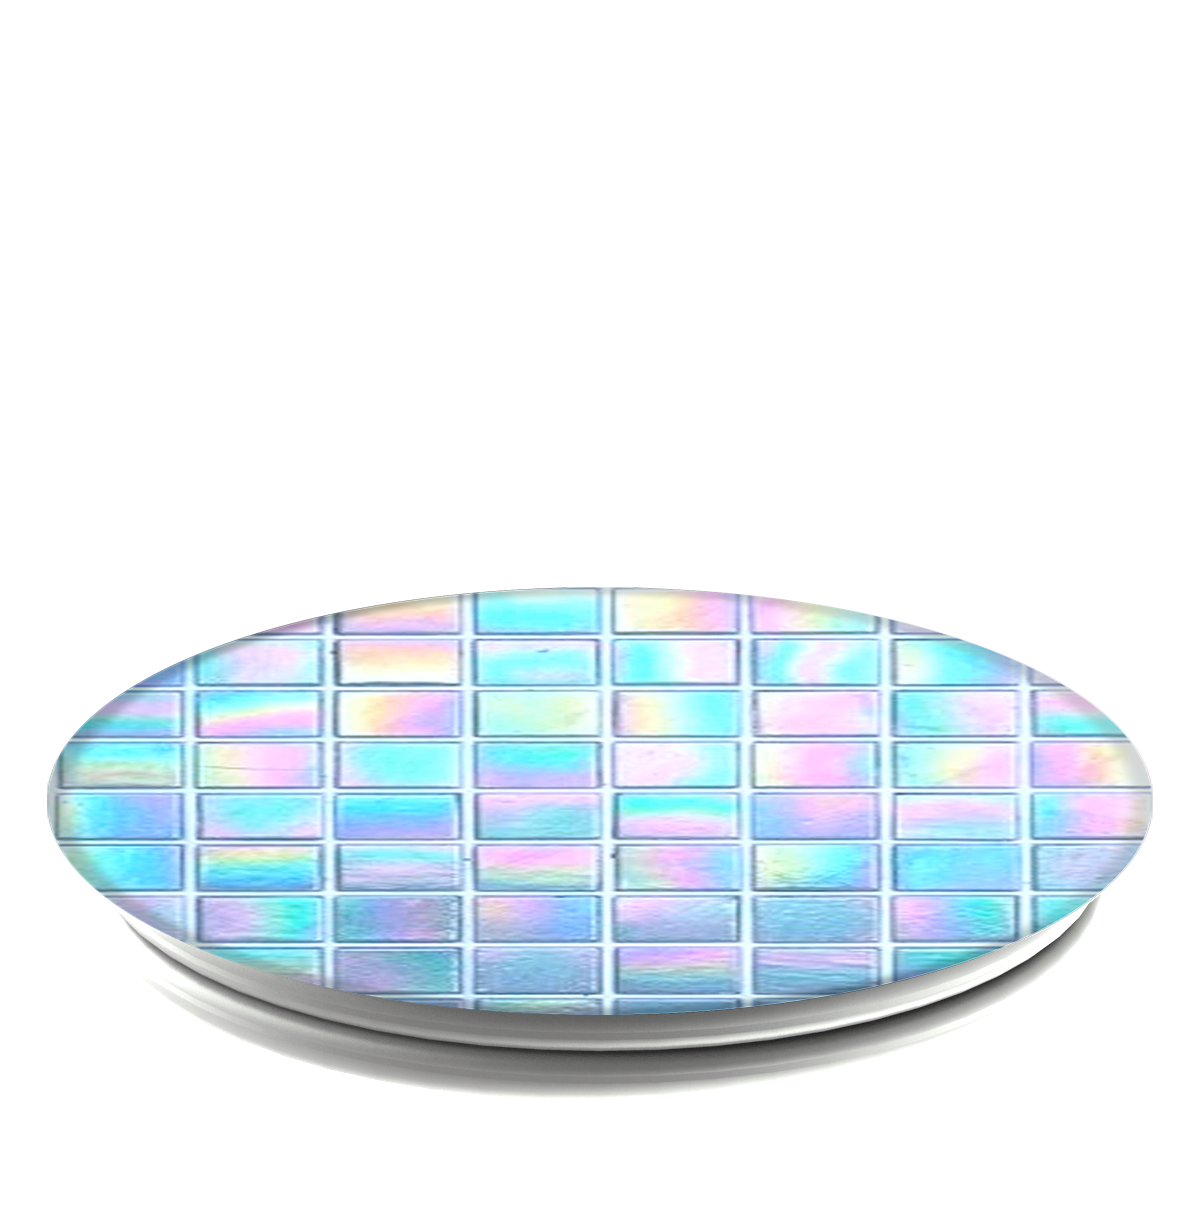 PopSockets Grip Holo Tile